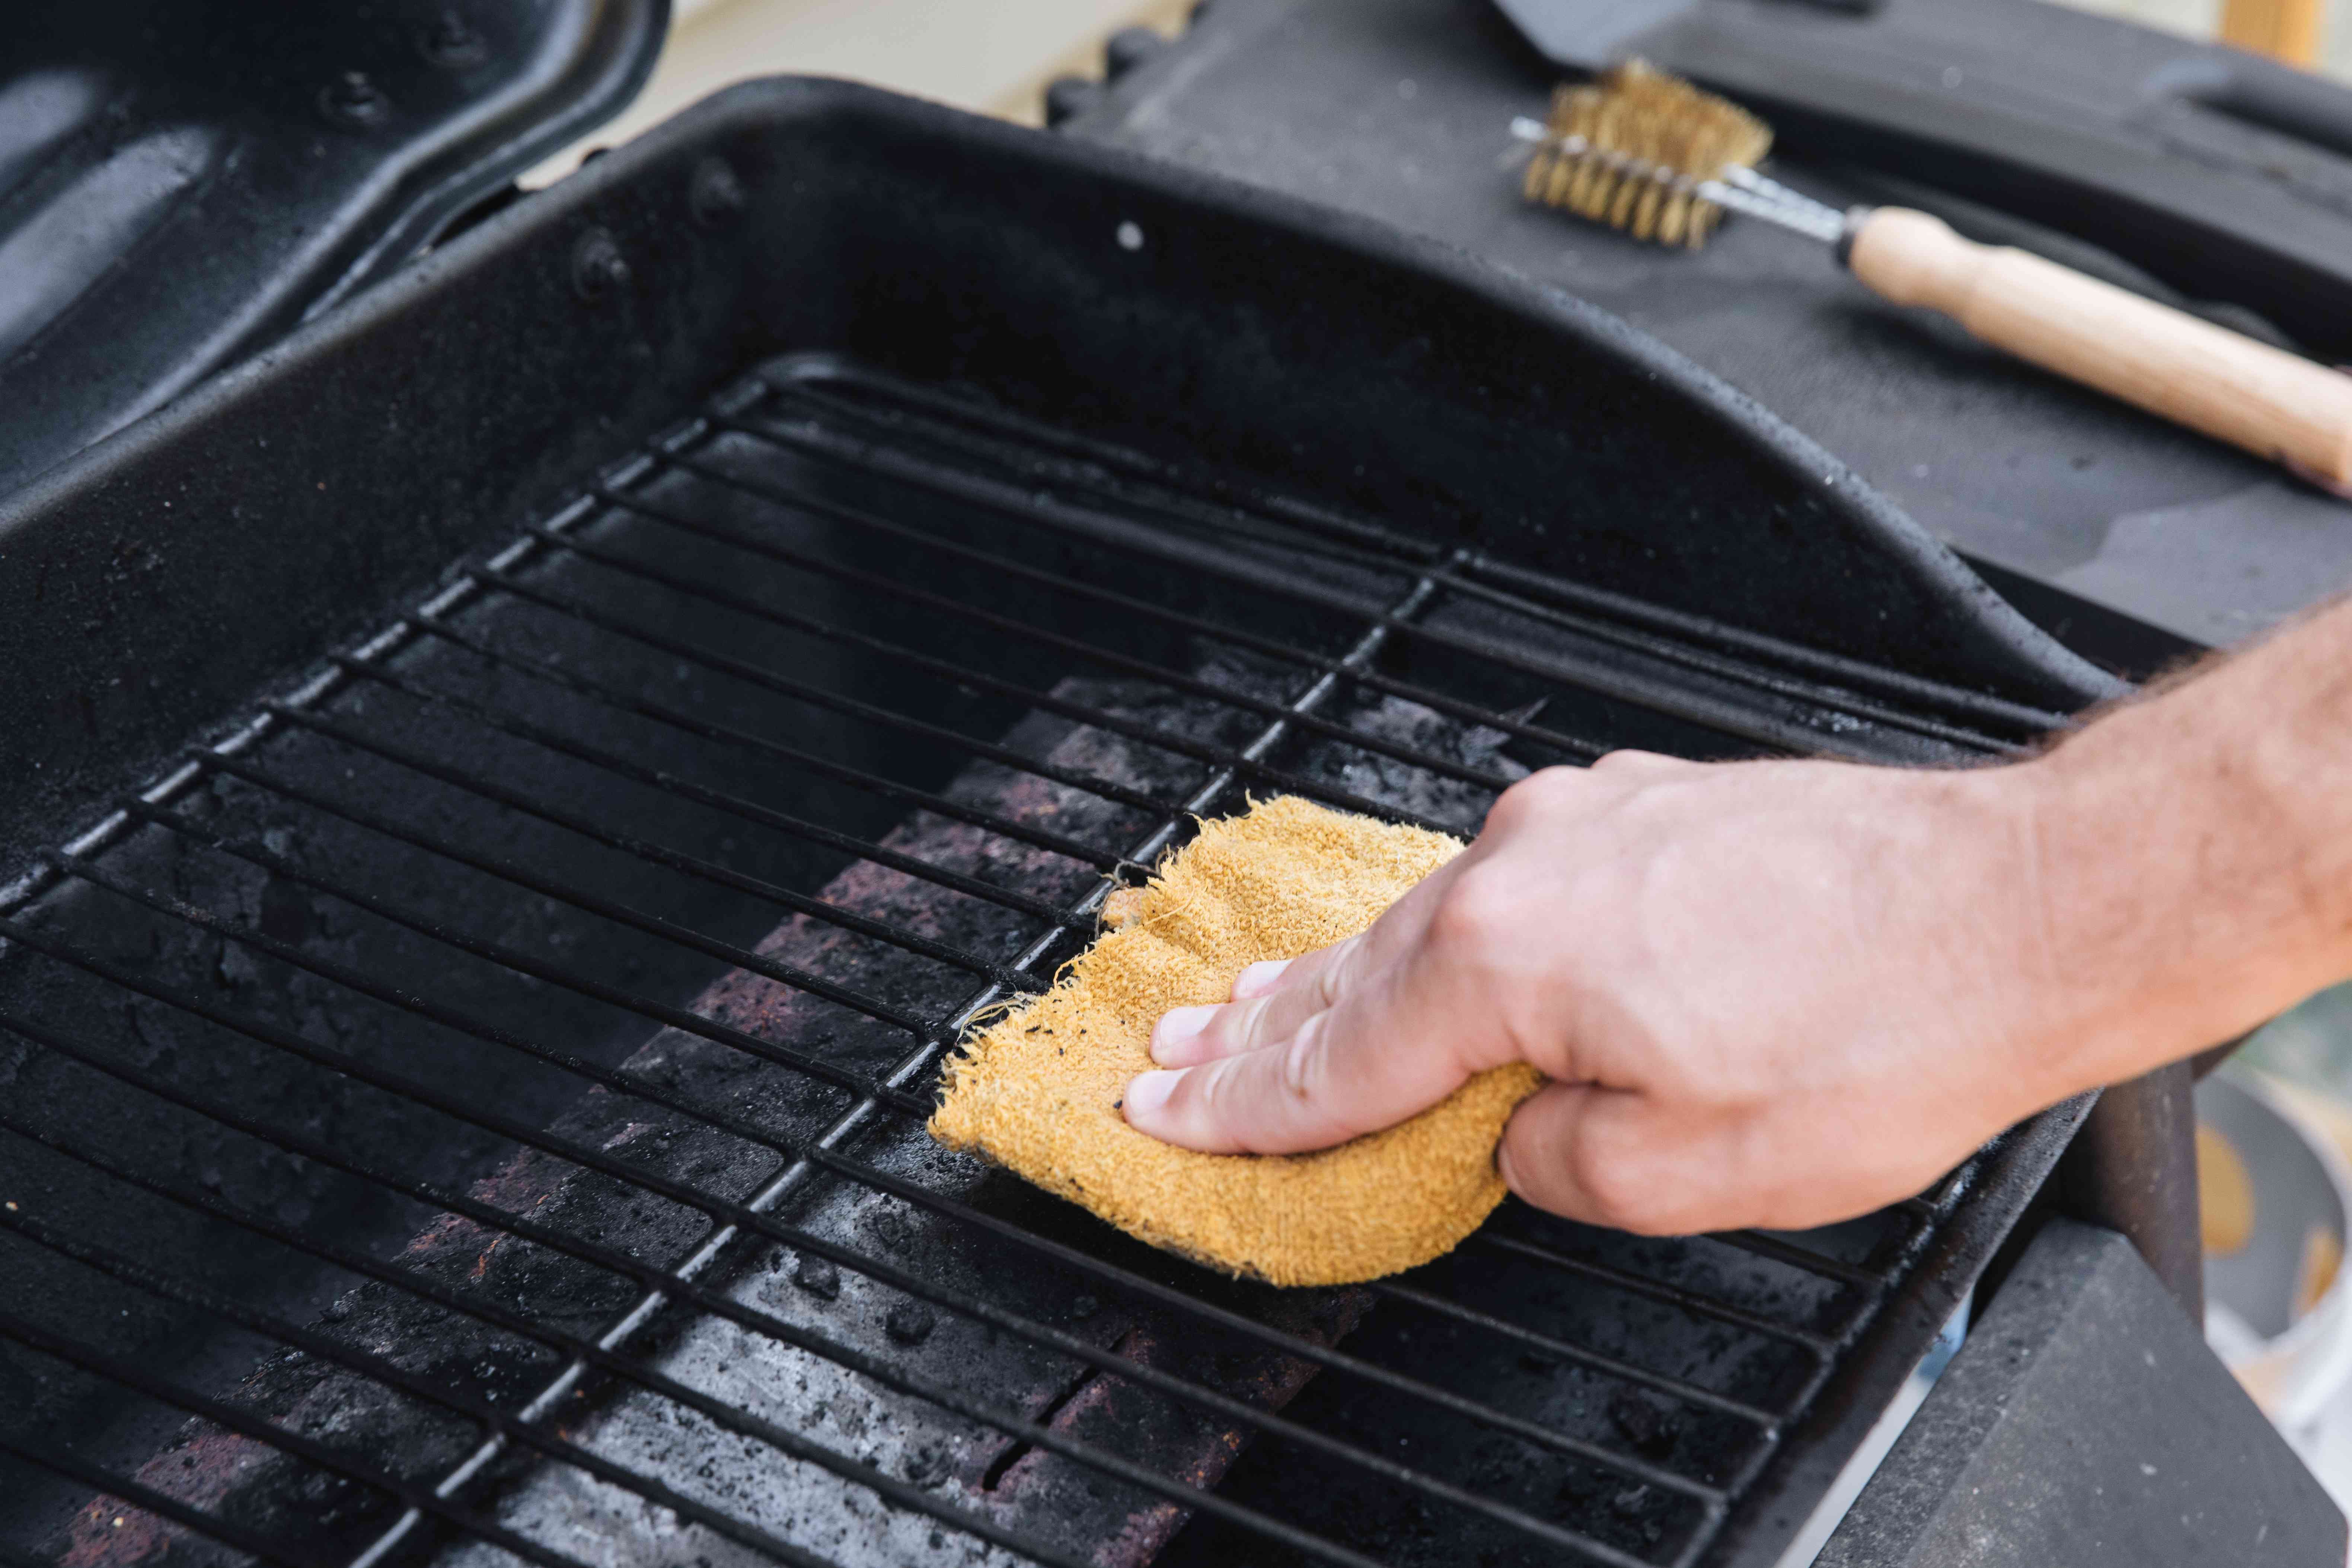 using a scrubber on the grill grates